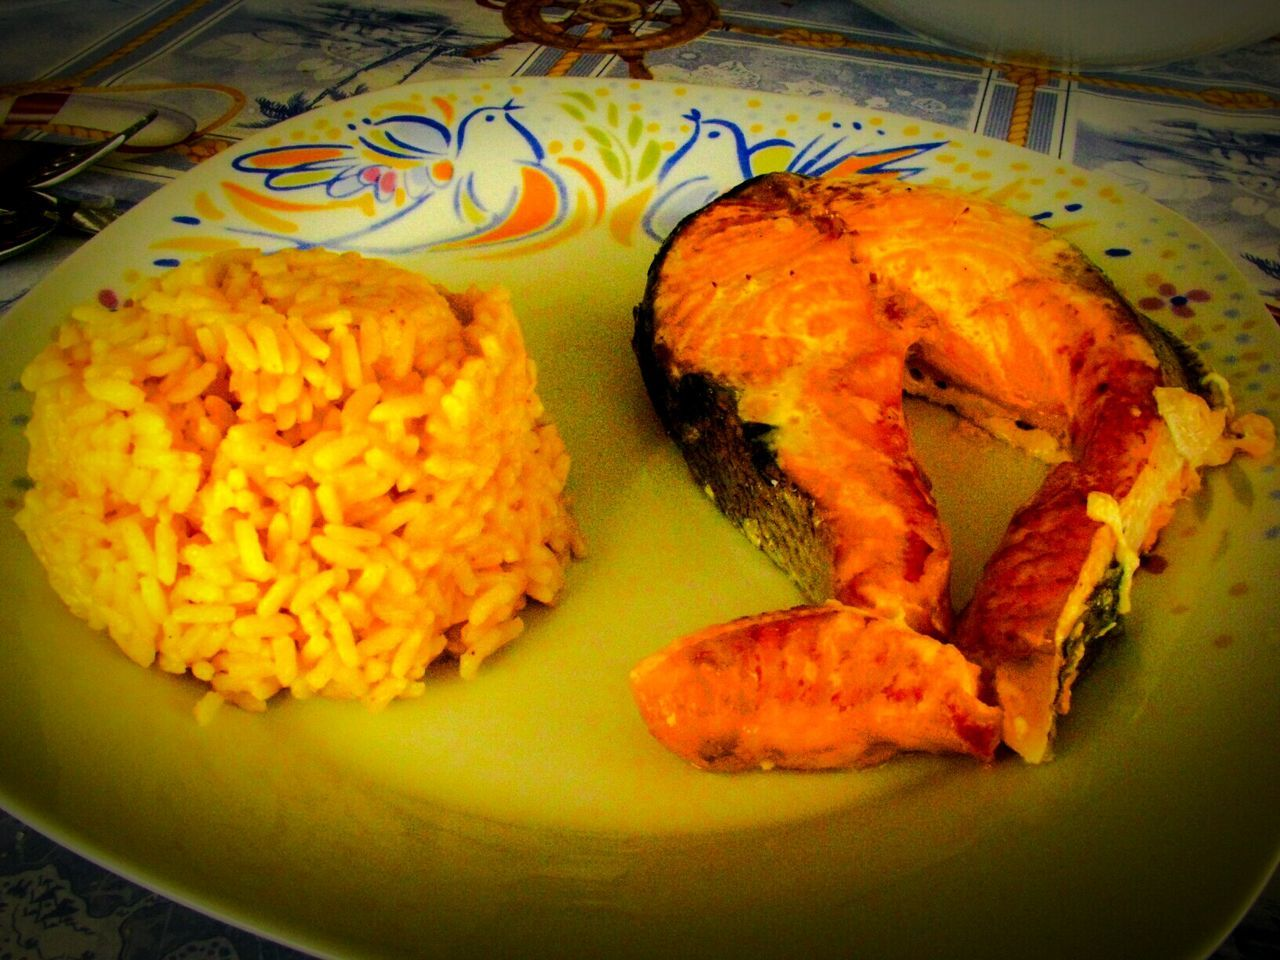 Q Quality Food Baked Salmon and Rice Boiled in Turmeric  Solution. Food Food Photography Diet & Fitness Dietfood My World Of Food Delicious Yummy Yellow Rice Everything In Its Place Showcase March No People Dish Of The Day Lunch Dinner What's For Dinner? Dish Show Us Your Takeaway!